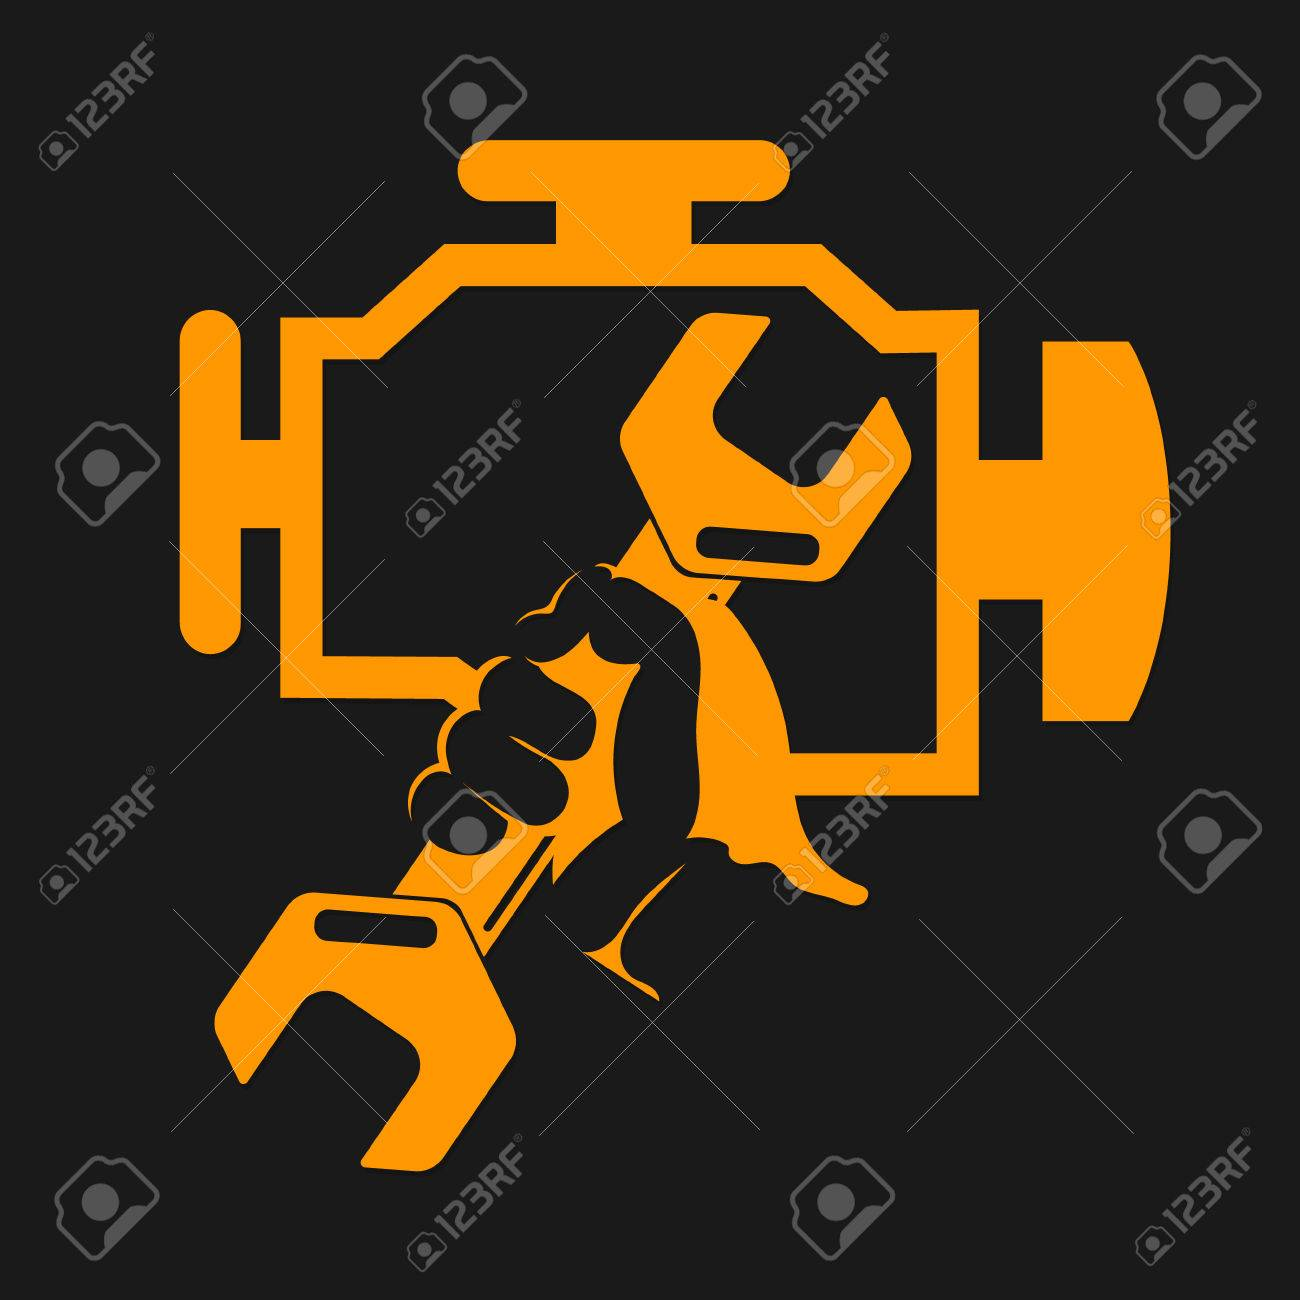 Engine repair symbol wrench in hand royalty free cliparts engine repair symbol wrench in hand stock vector 71544244 biocorpaavc Gallery